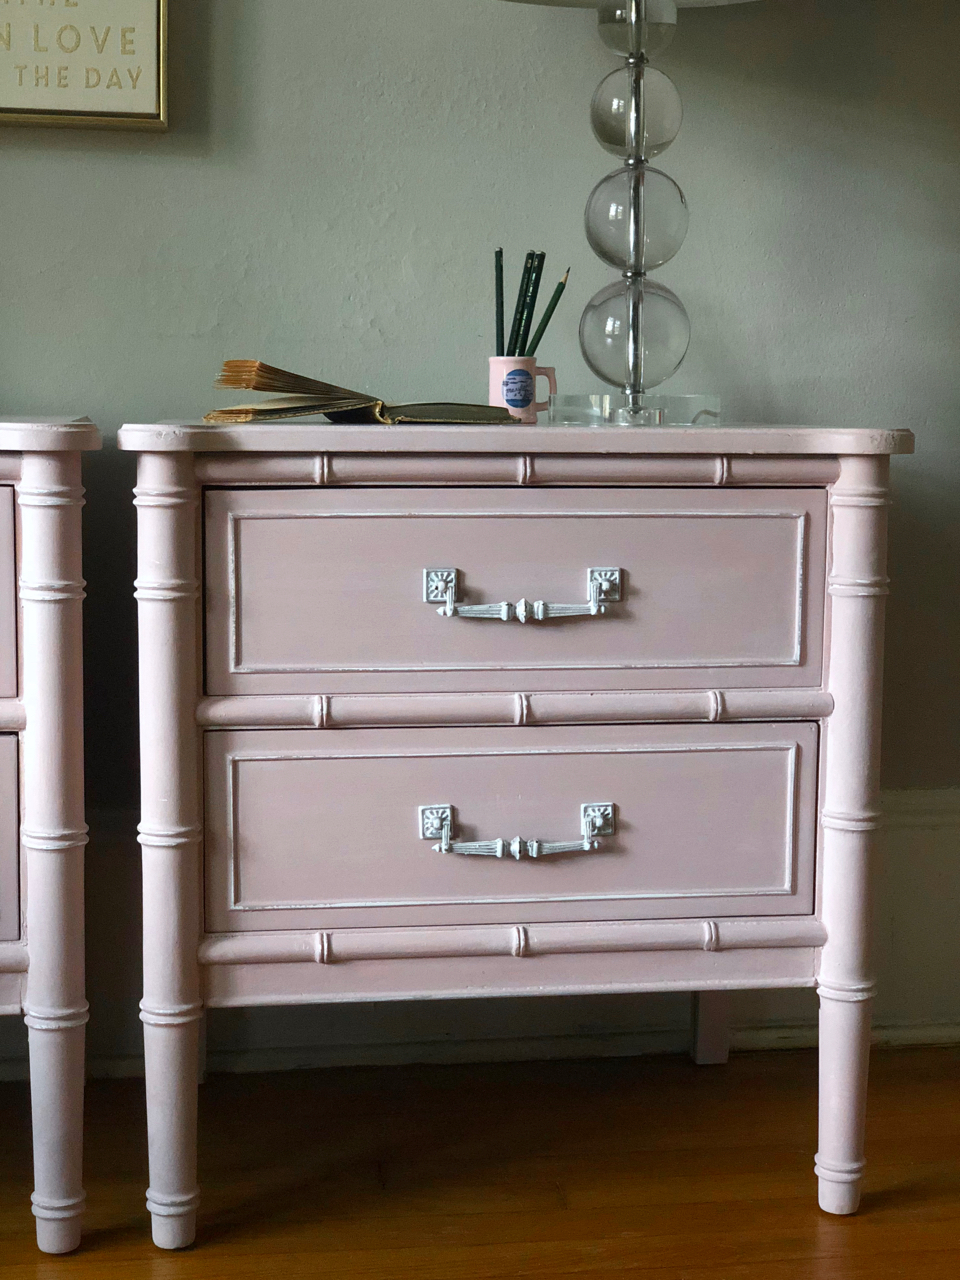 jo-torrijos-atlanta-painted-furniture-annie-sloan-antoinette-blush-pink-nightstands-3.jpg